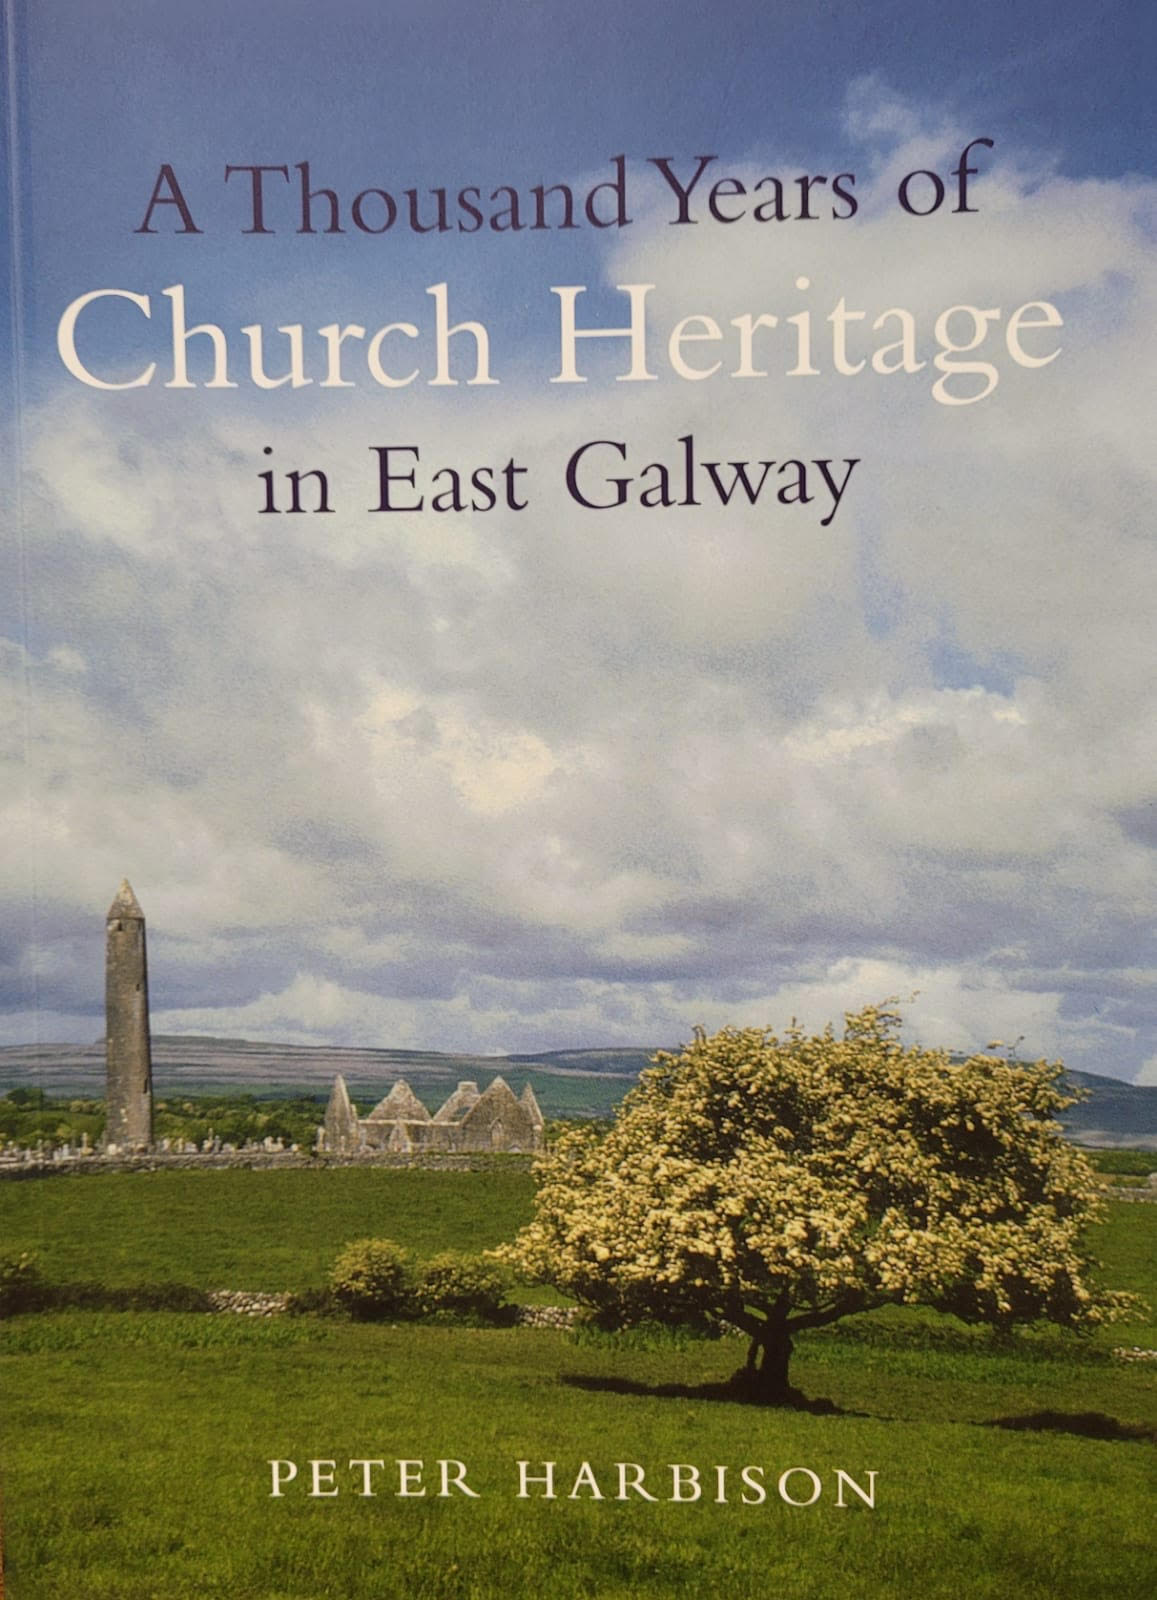 A Thousand Years of Church Heritage in East Galway | Peter Harbison | Charlie Byrne's